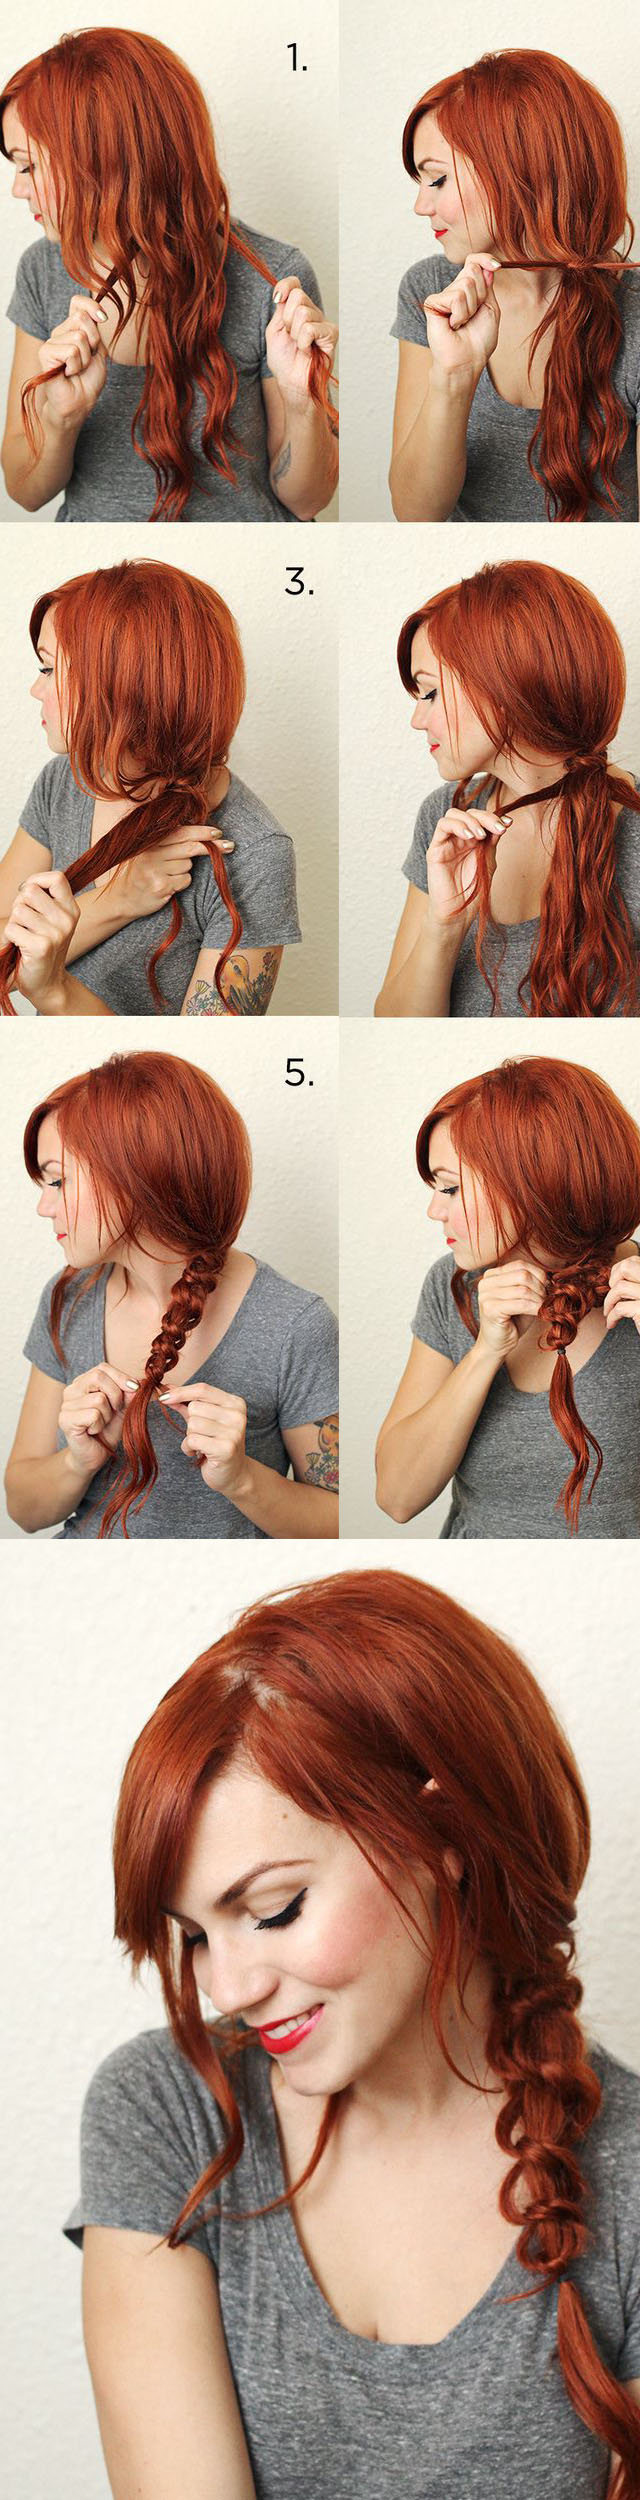 Daily Hair Tutorials You Must Have - Pretty Designs